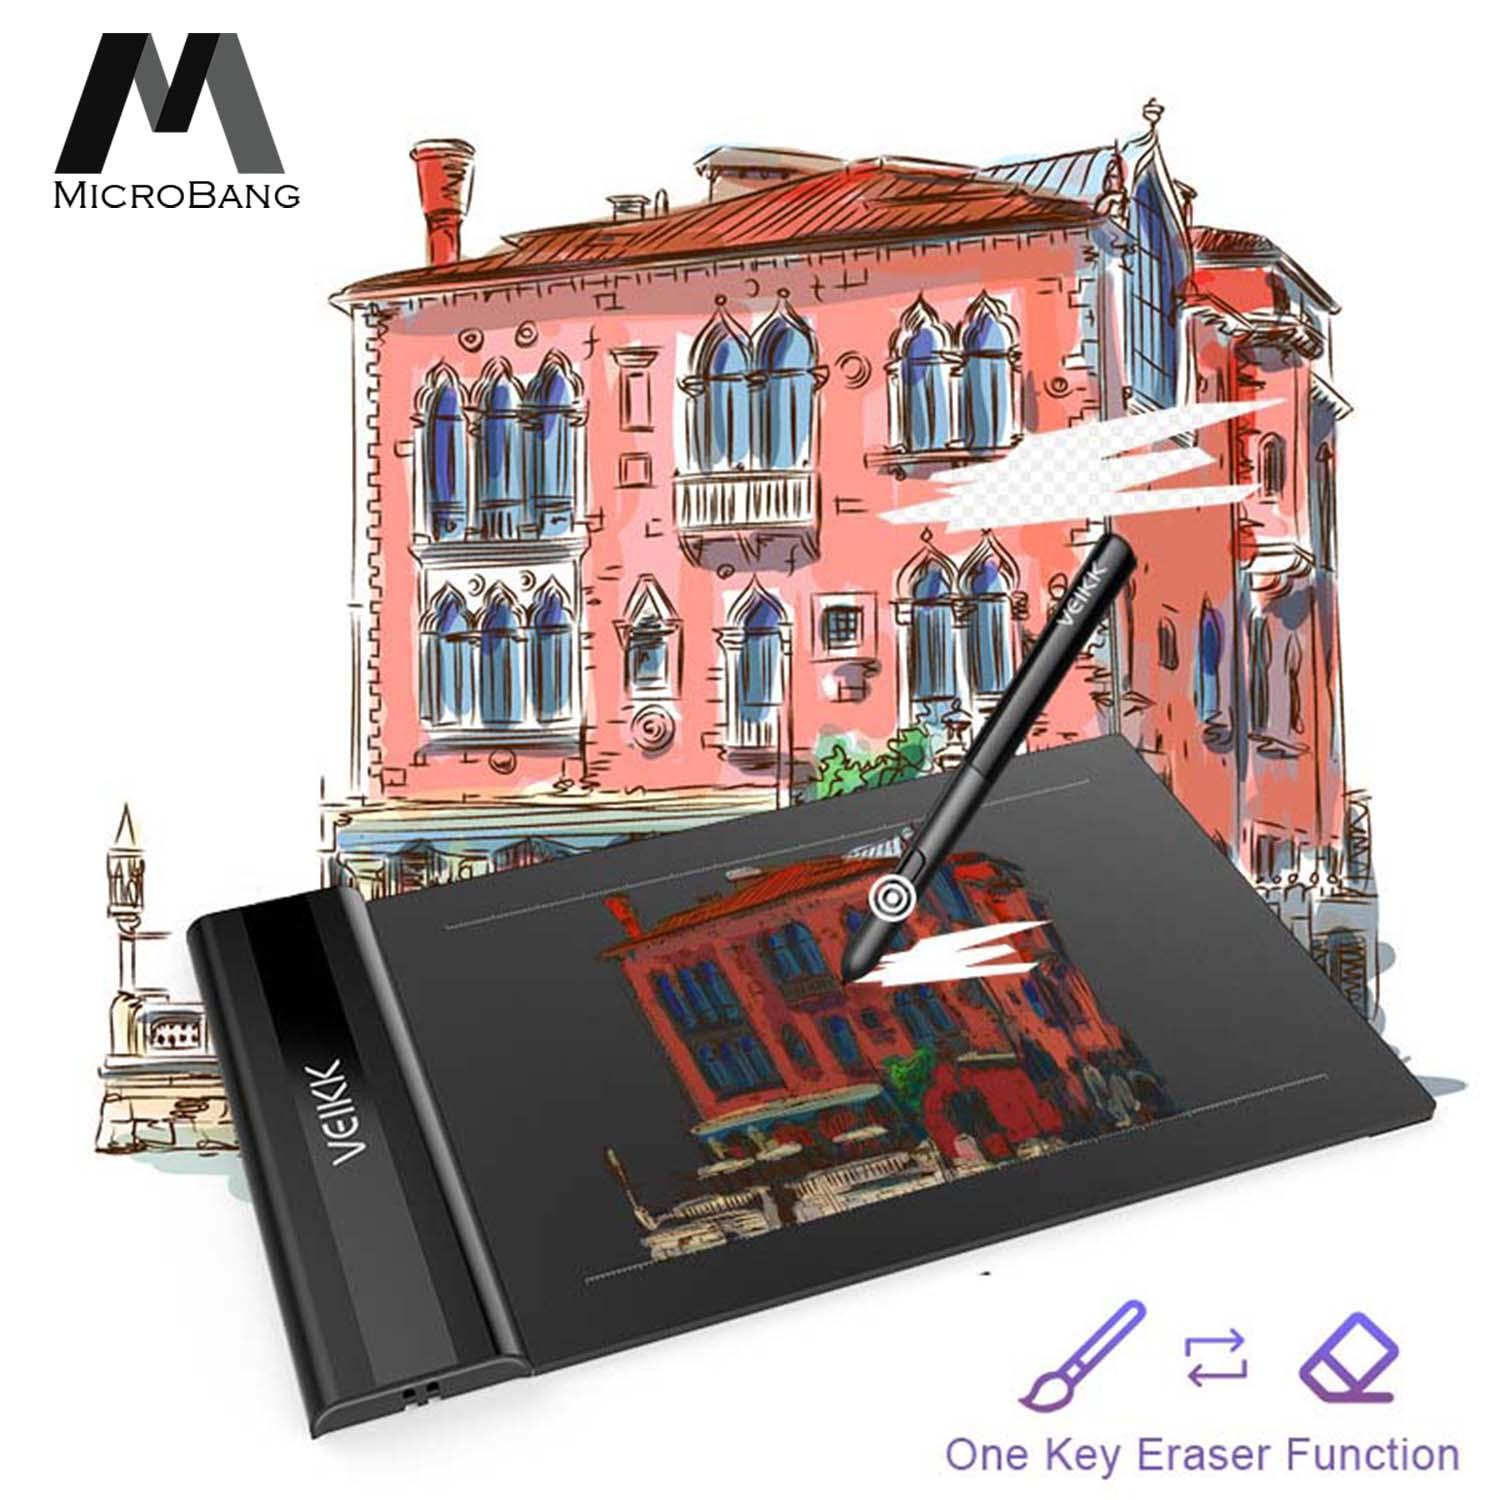 MicroBang USB Drawing Writing Art Graphics Board Tablet Digital Drawing Pen Tablet S640 Ultra-thin 6x4 Inch with 8192 Levels Passive Pen